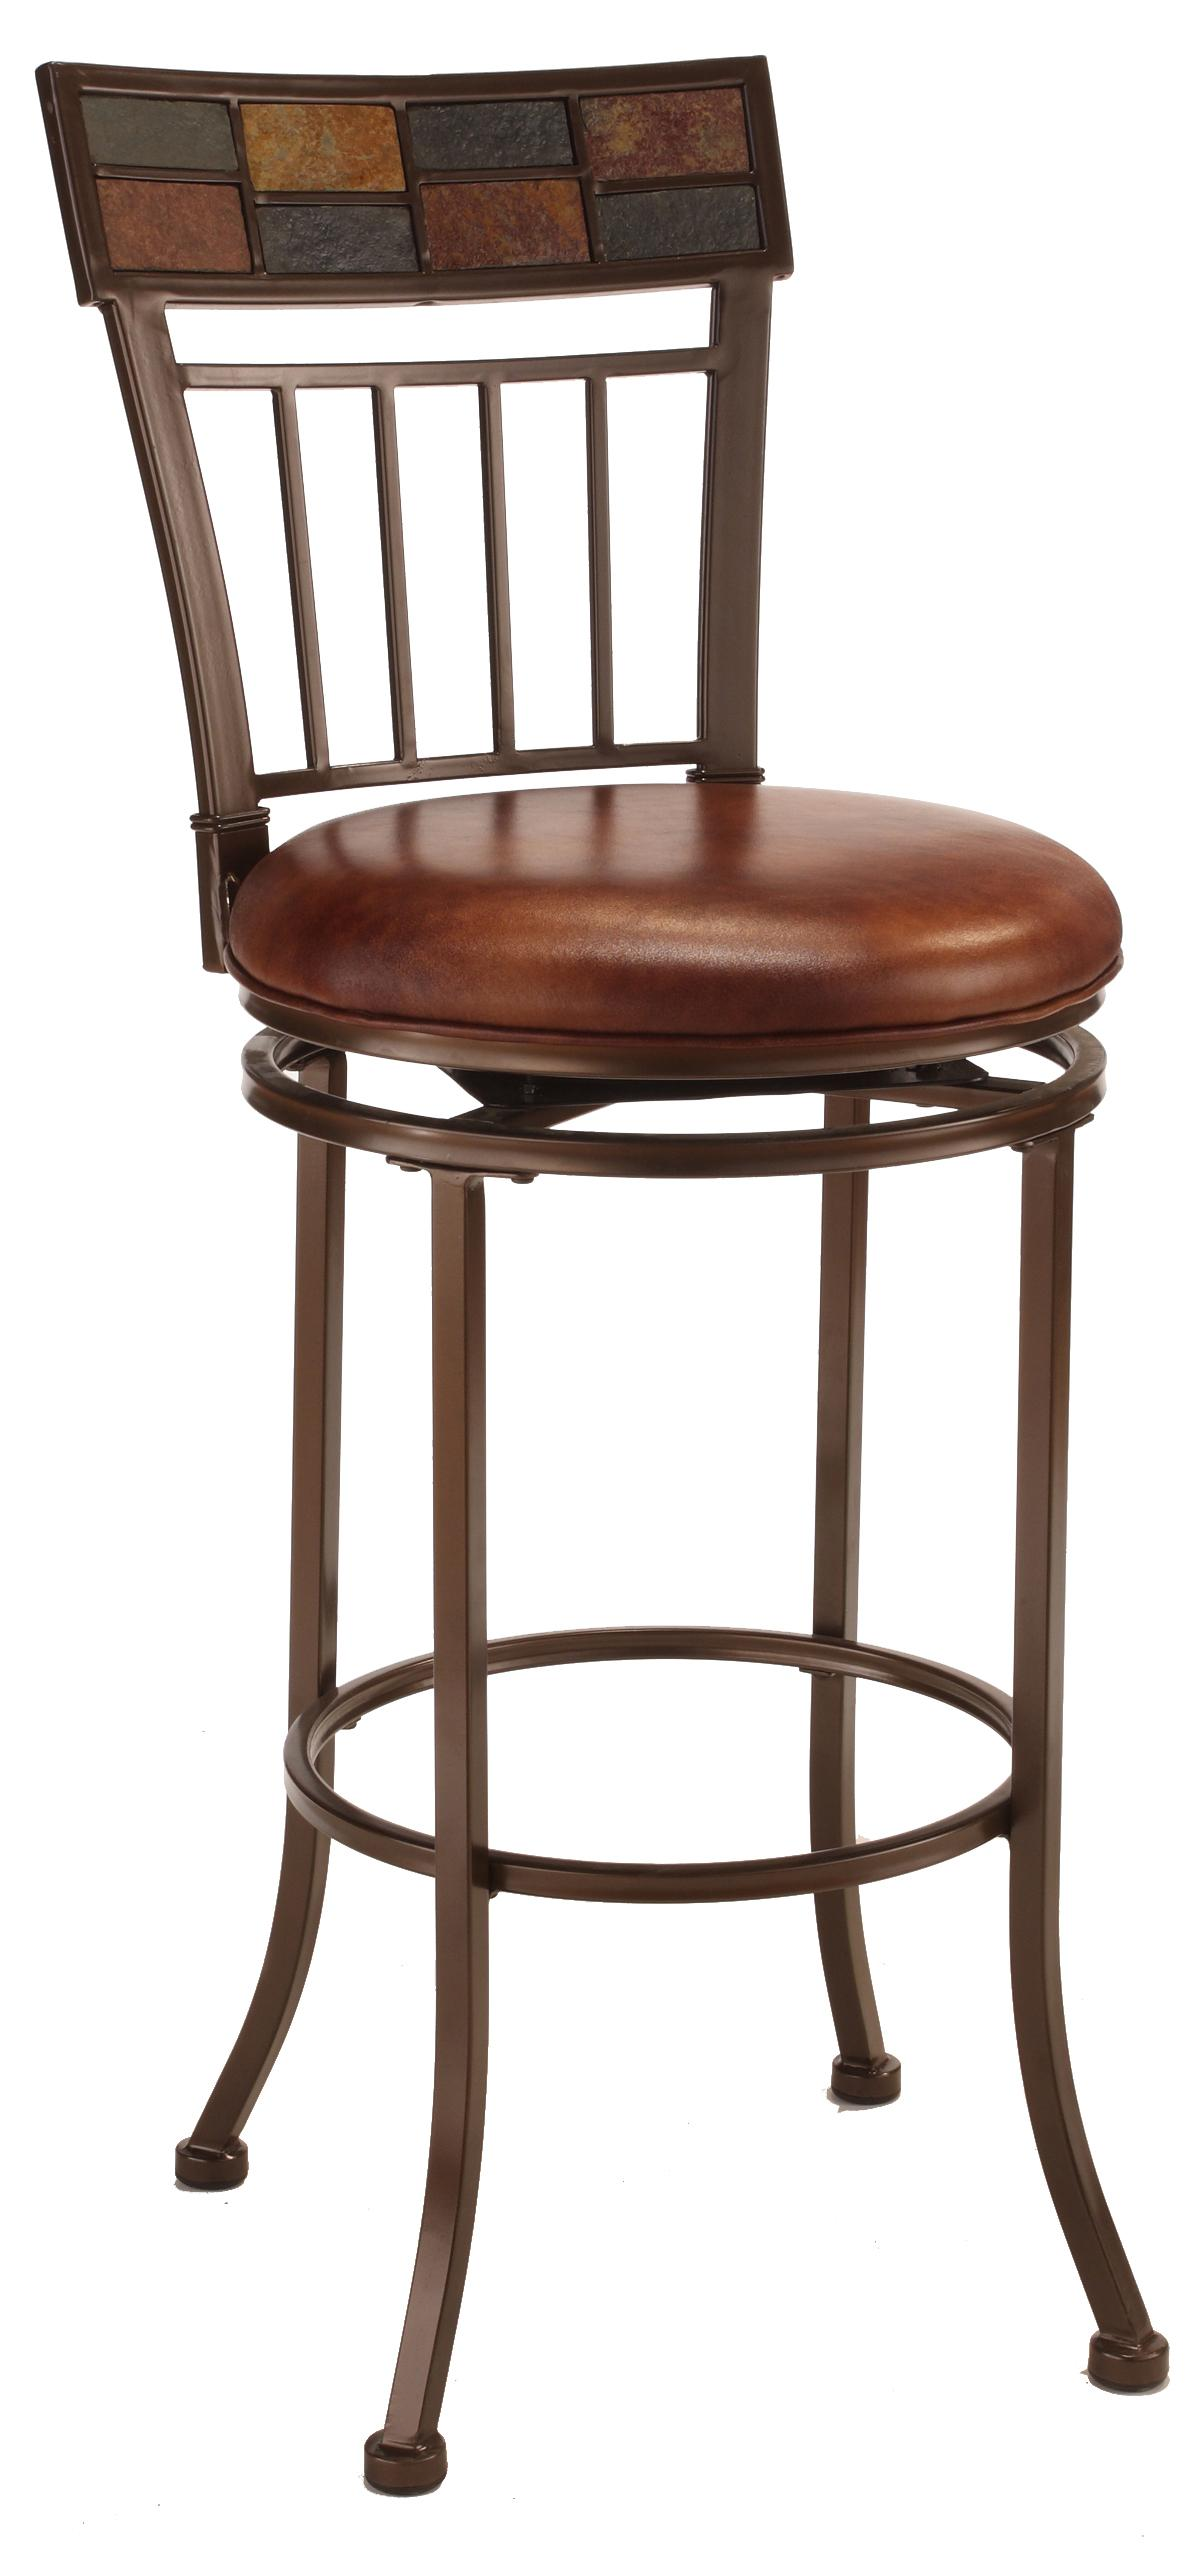 Bright Colored Bar Stools Hillsdale Metal Stools 4266 830 30 Quot Bar Height Montero